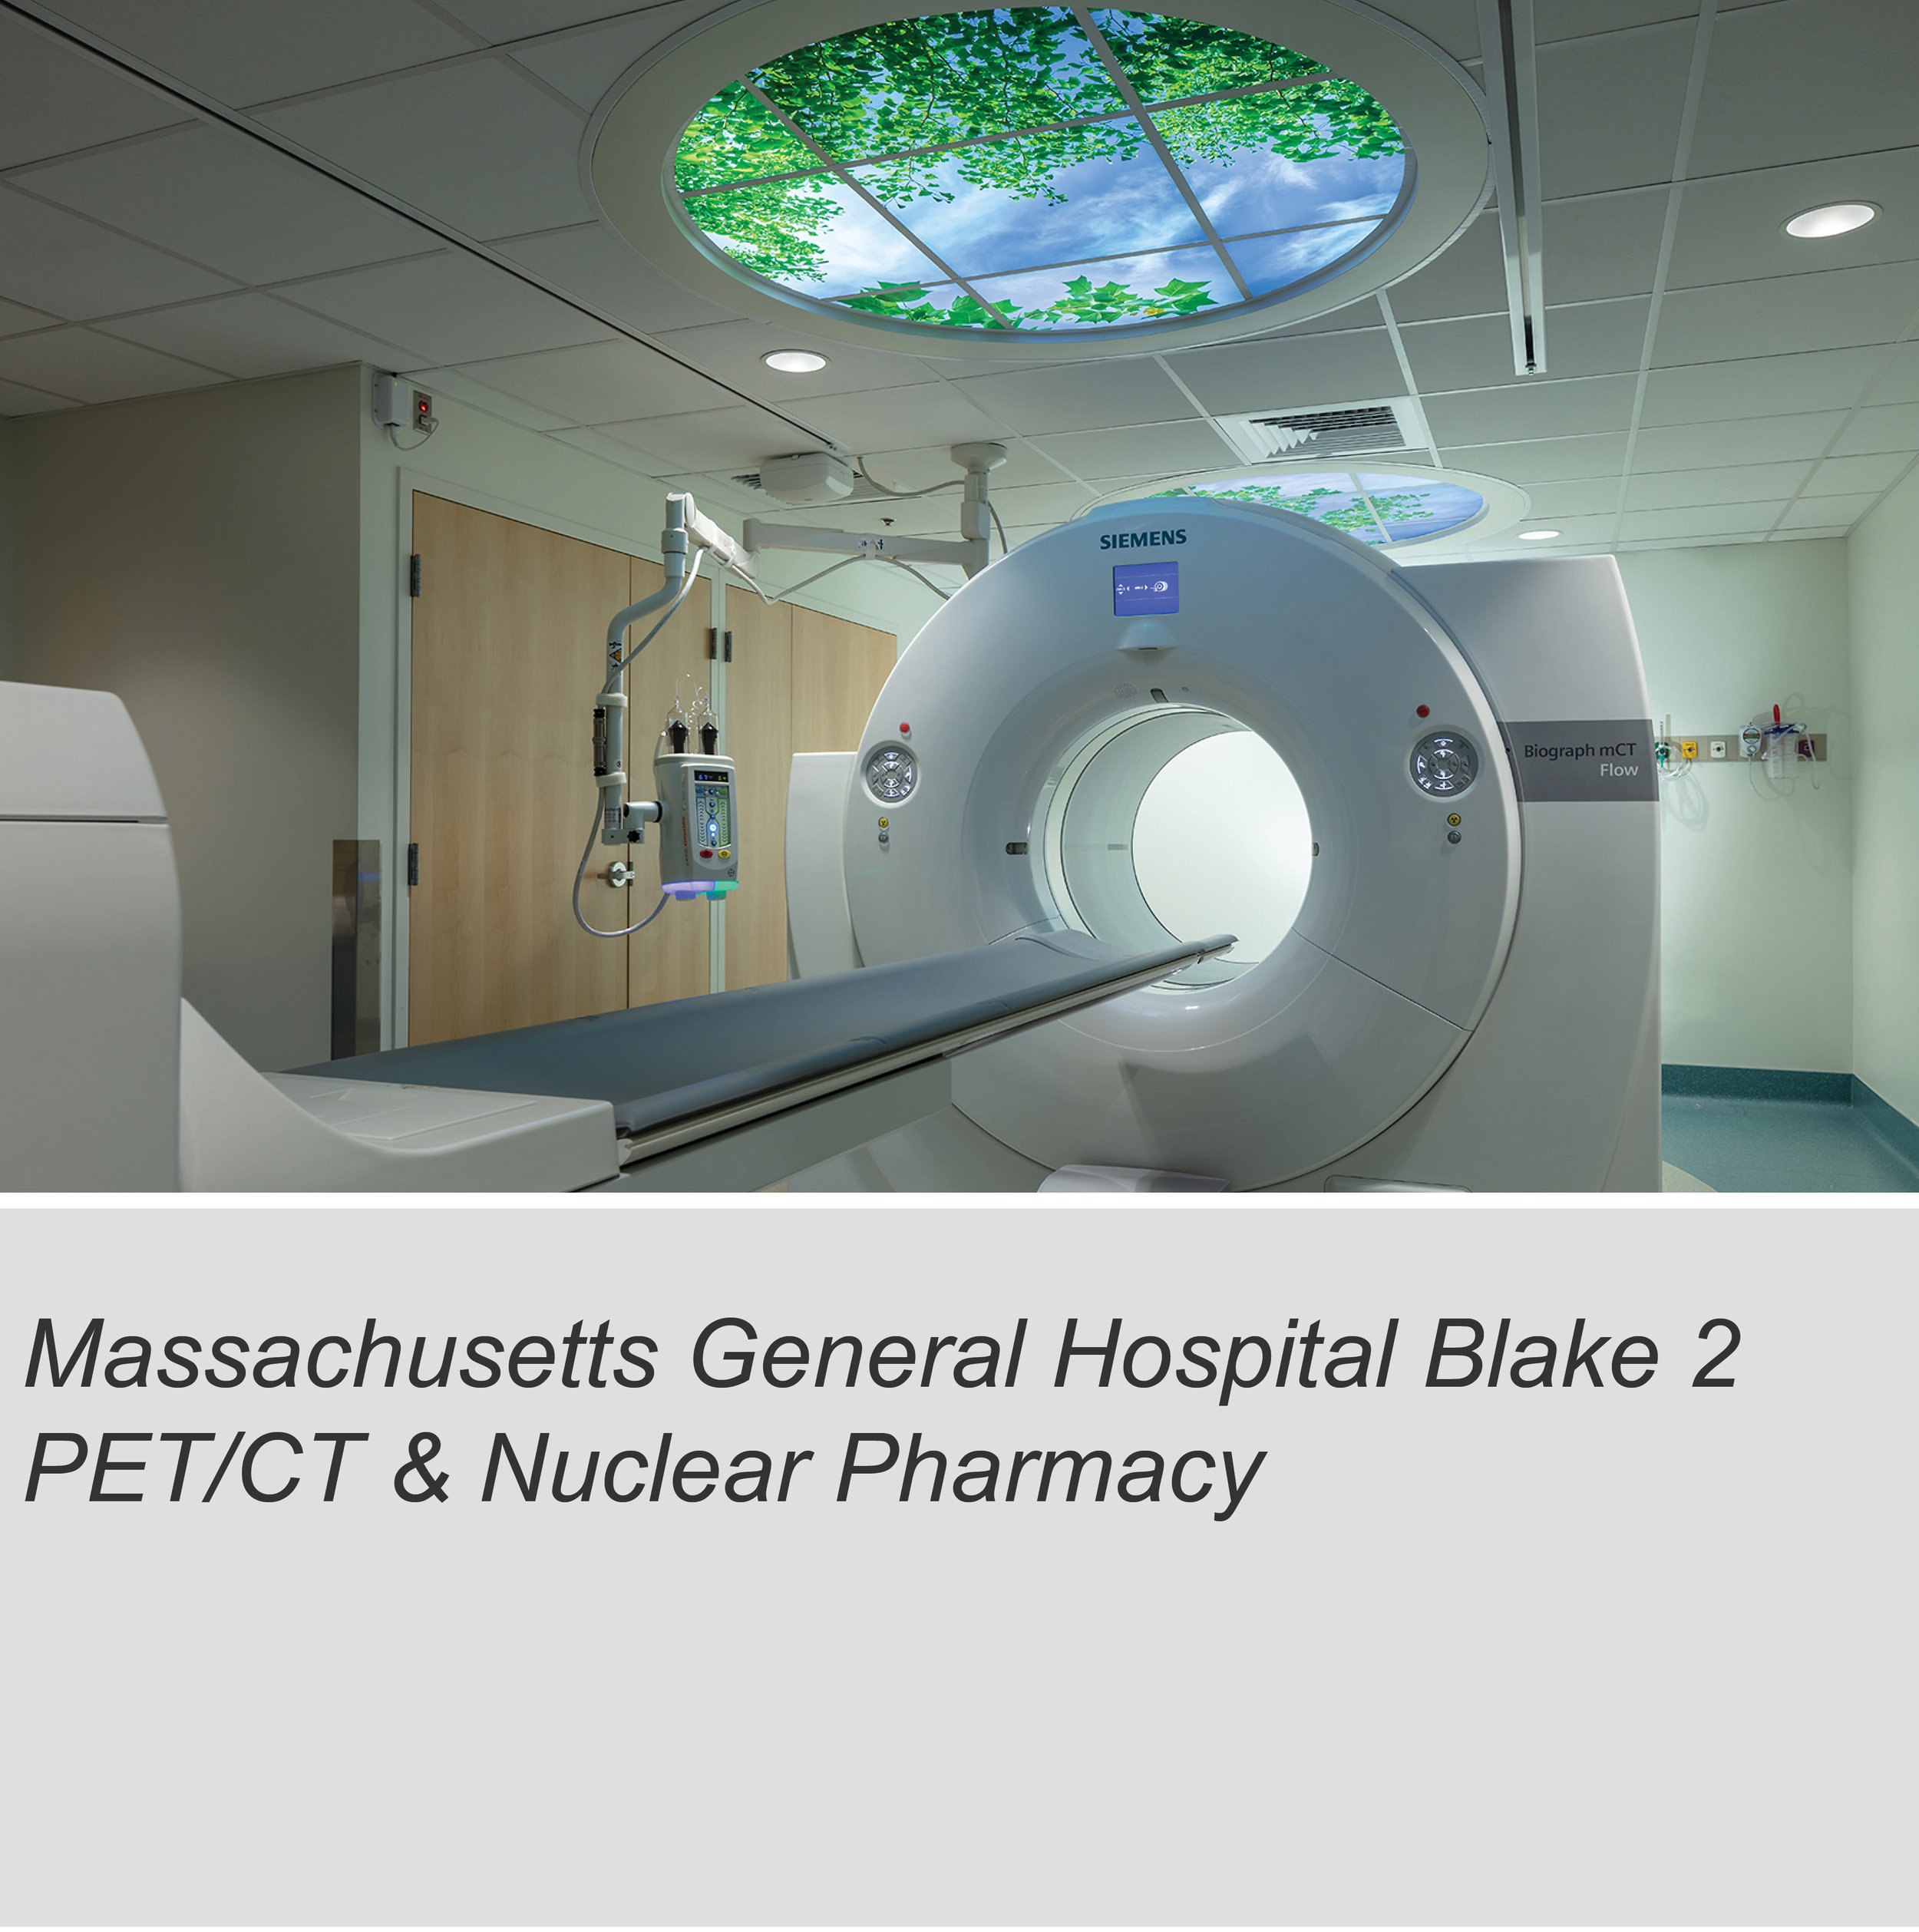 MGH_Blake 2 PET_CT.jpg